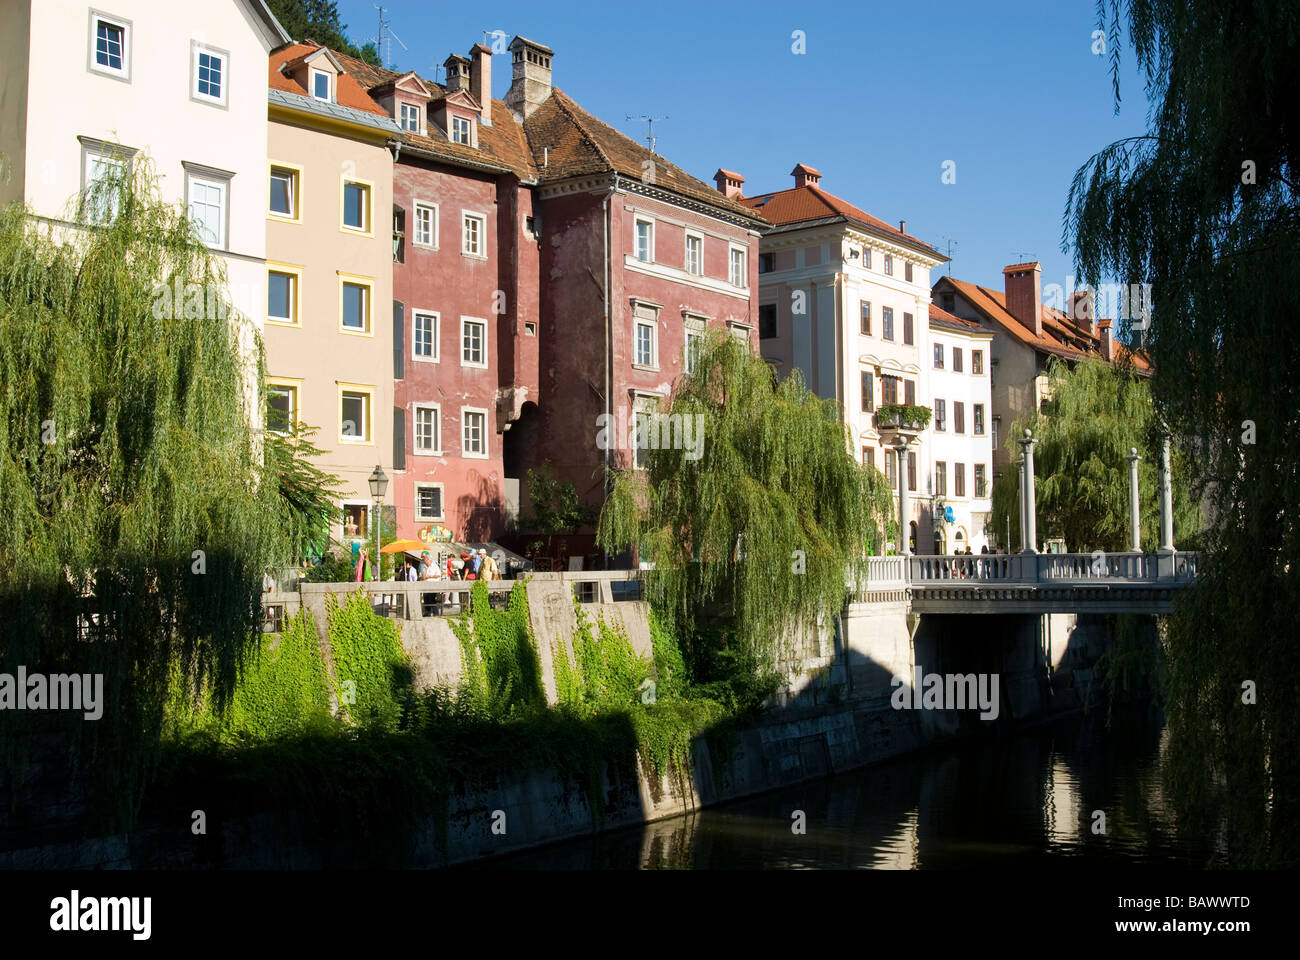 Various Architectural Styles Along the Ljubljanica River - Stock Image